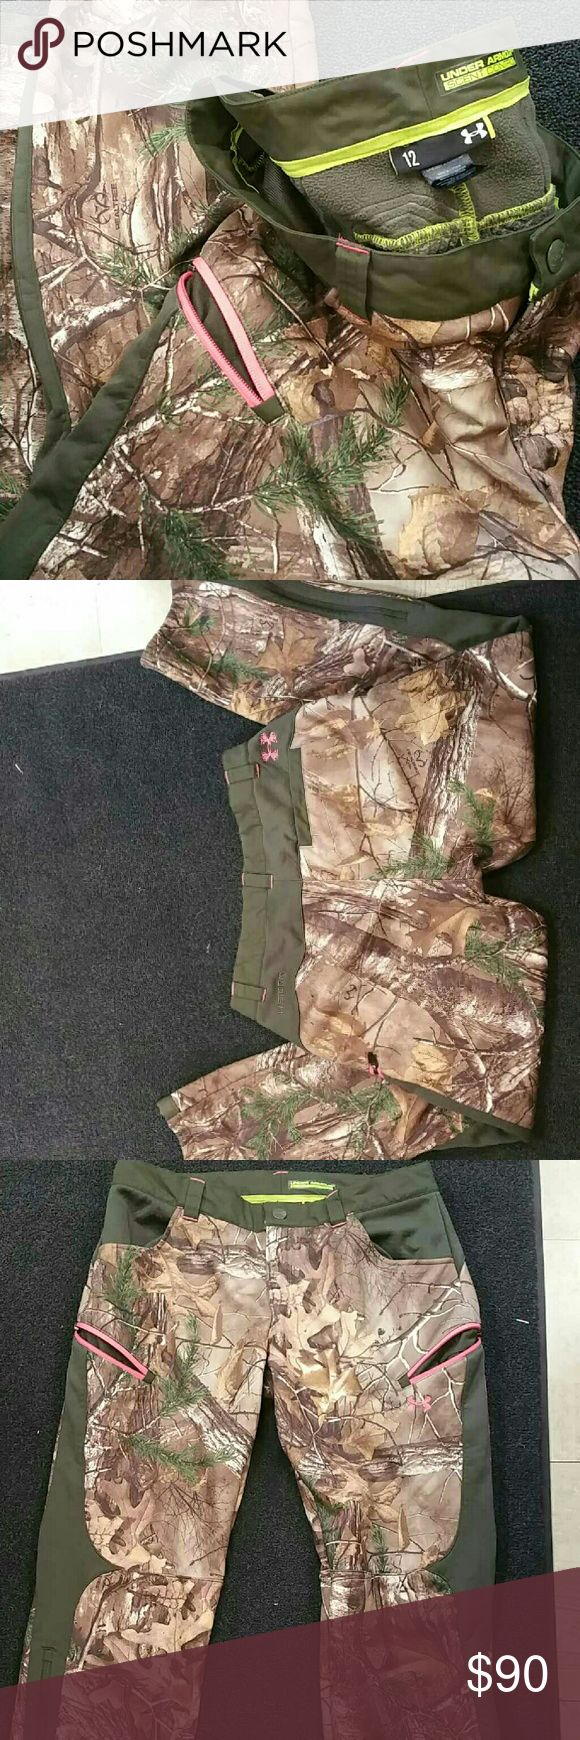 Woman's UA cold gear camo hunting pants Scent control woman's hunting pants bought last season only worn a handful of times. Under Armour Pants